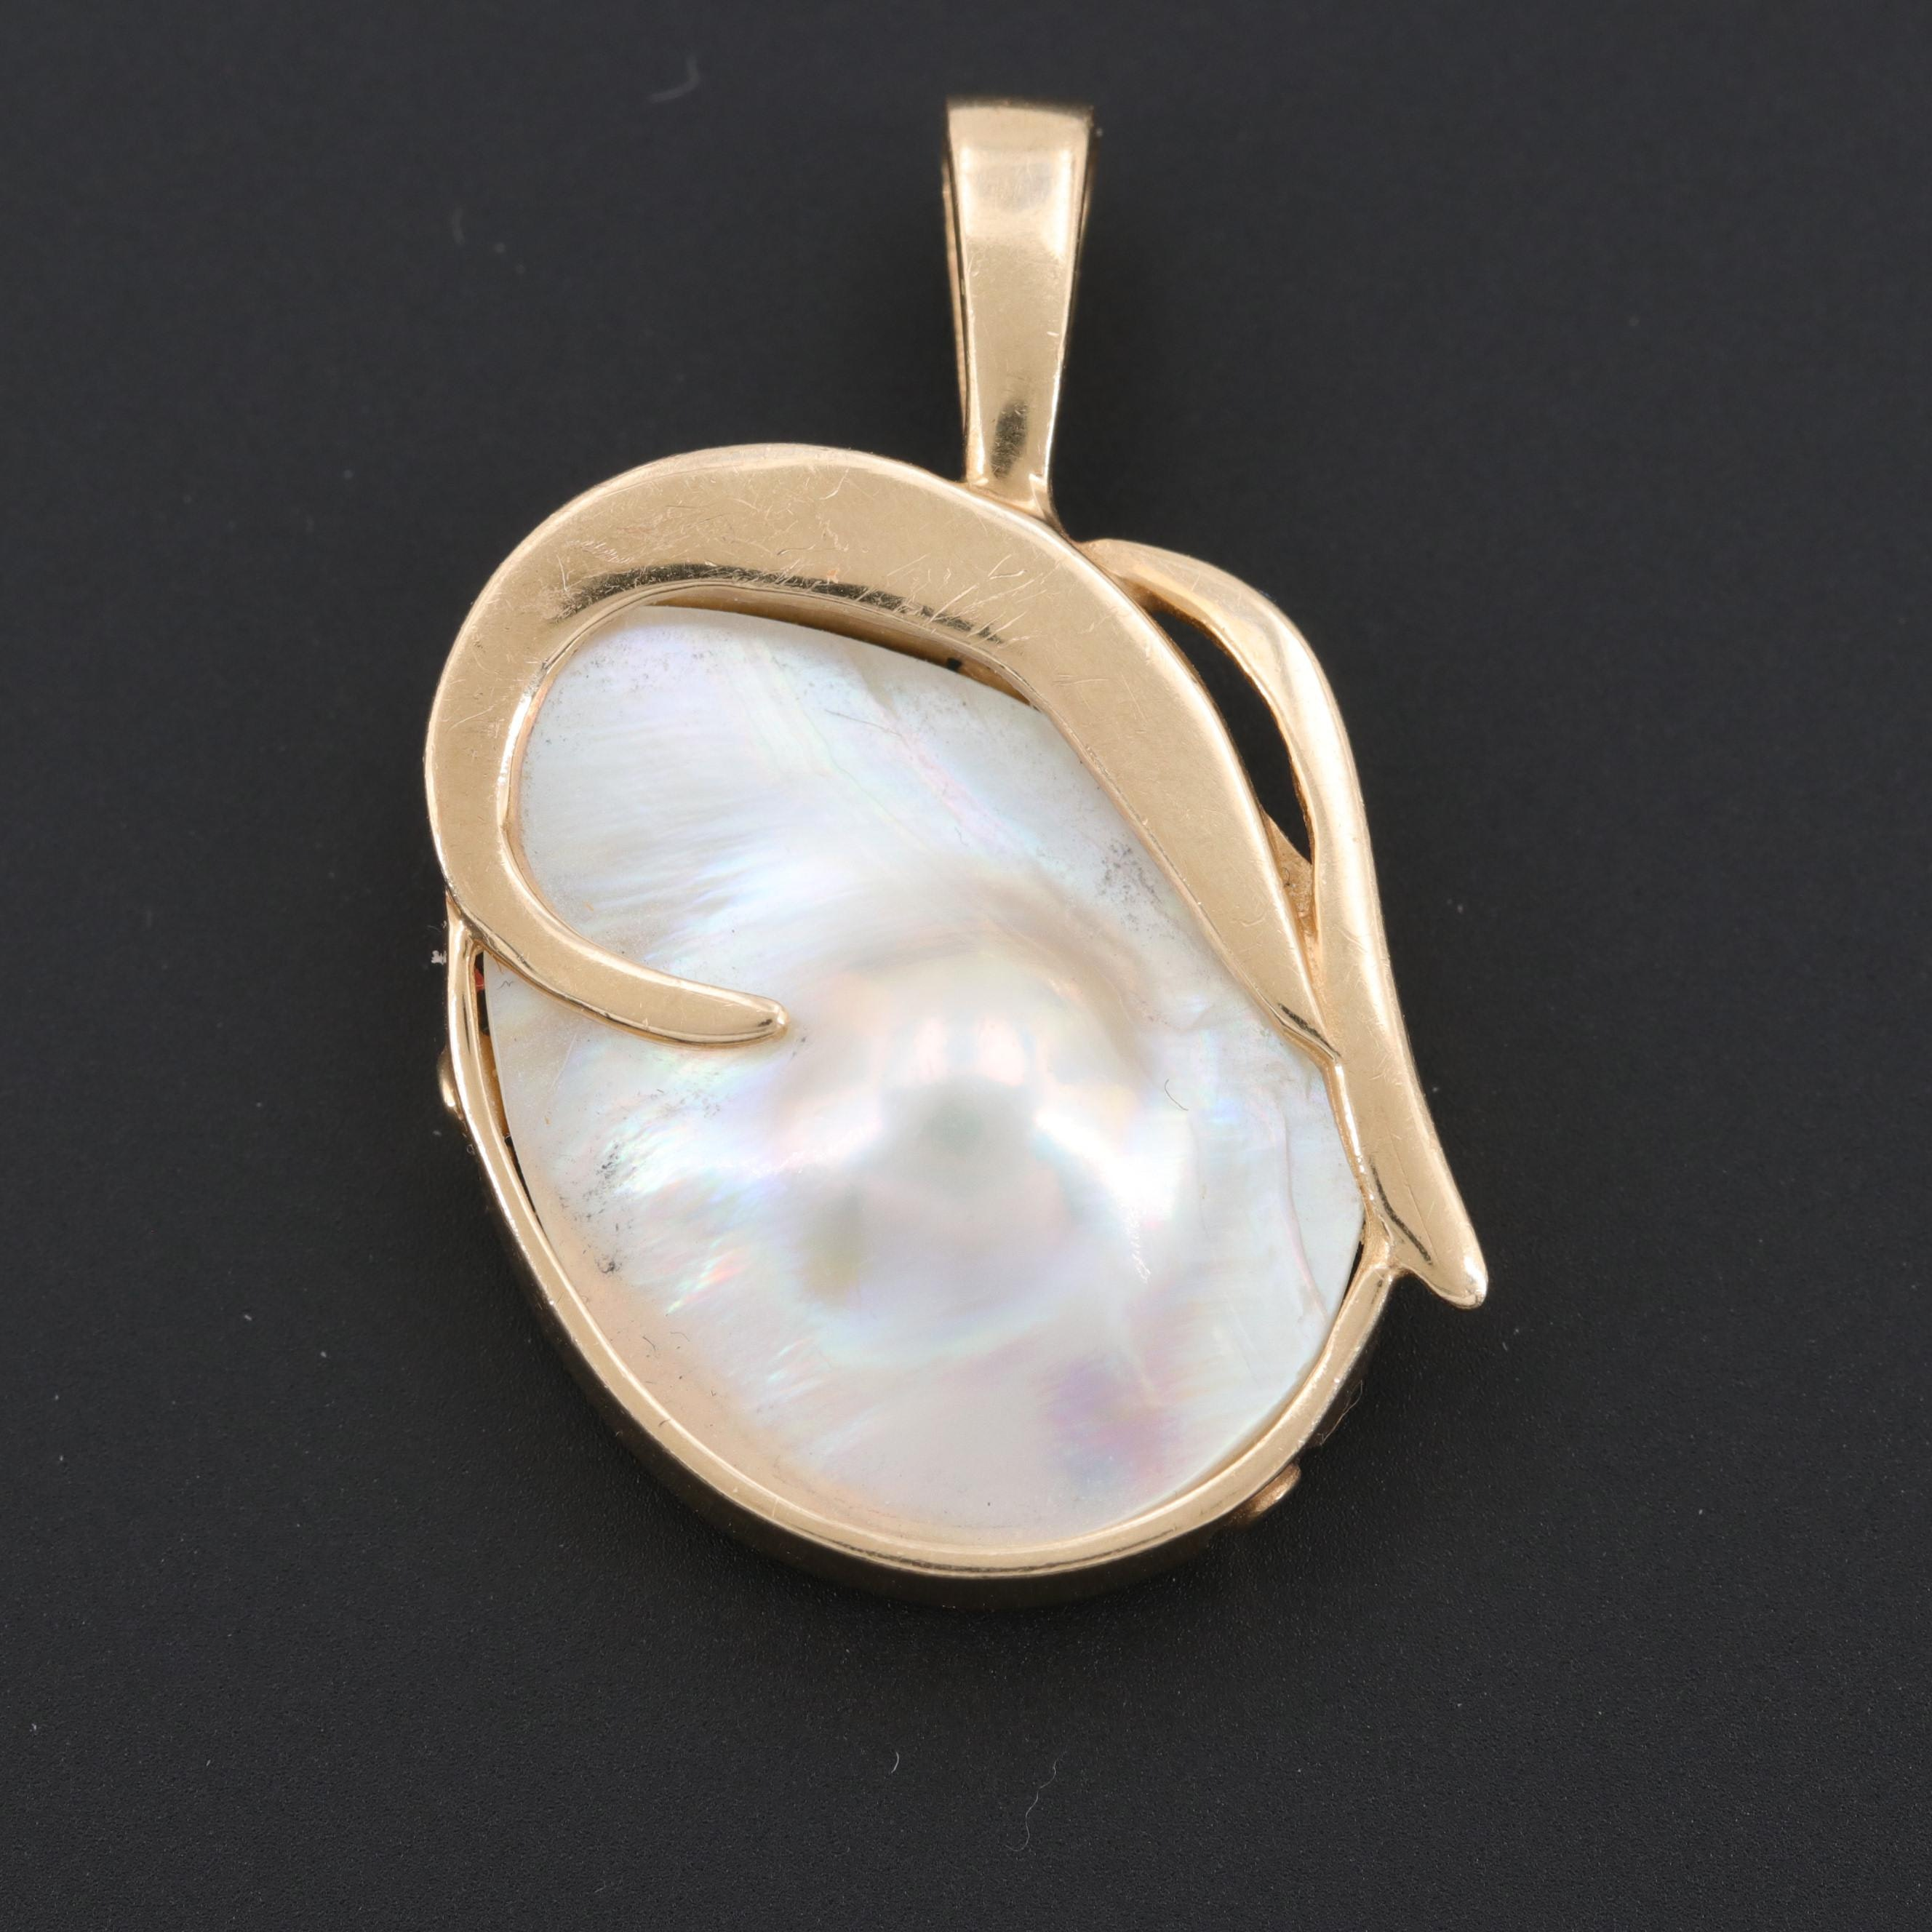 14K Yellow Gold Cultured Blister Pearl Pendant